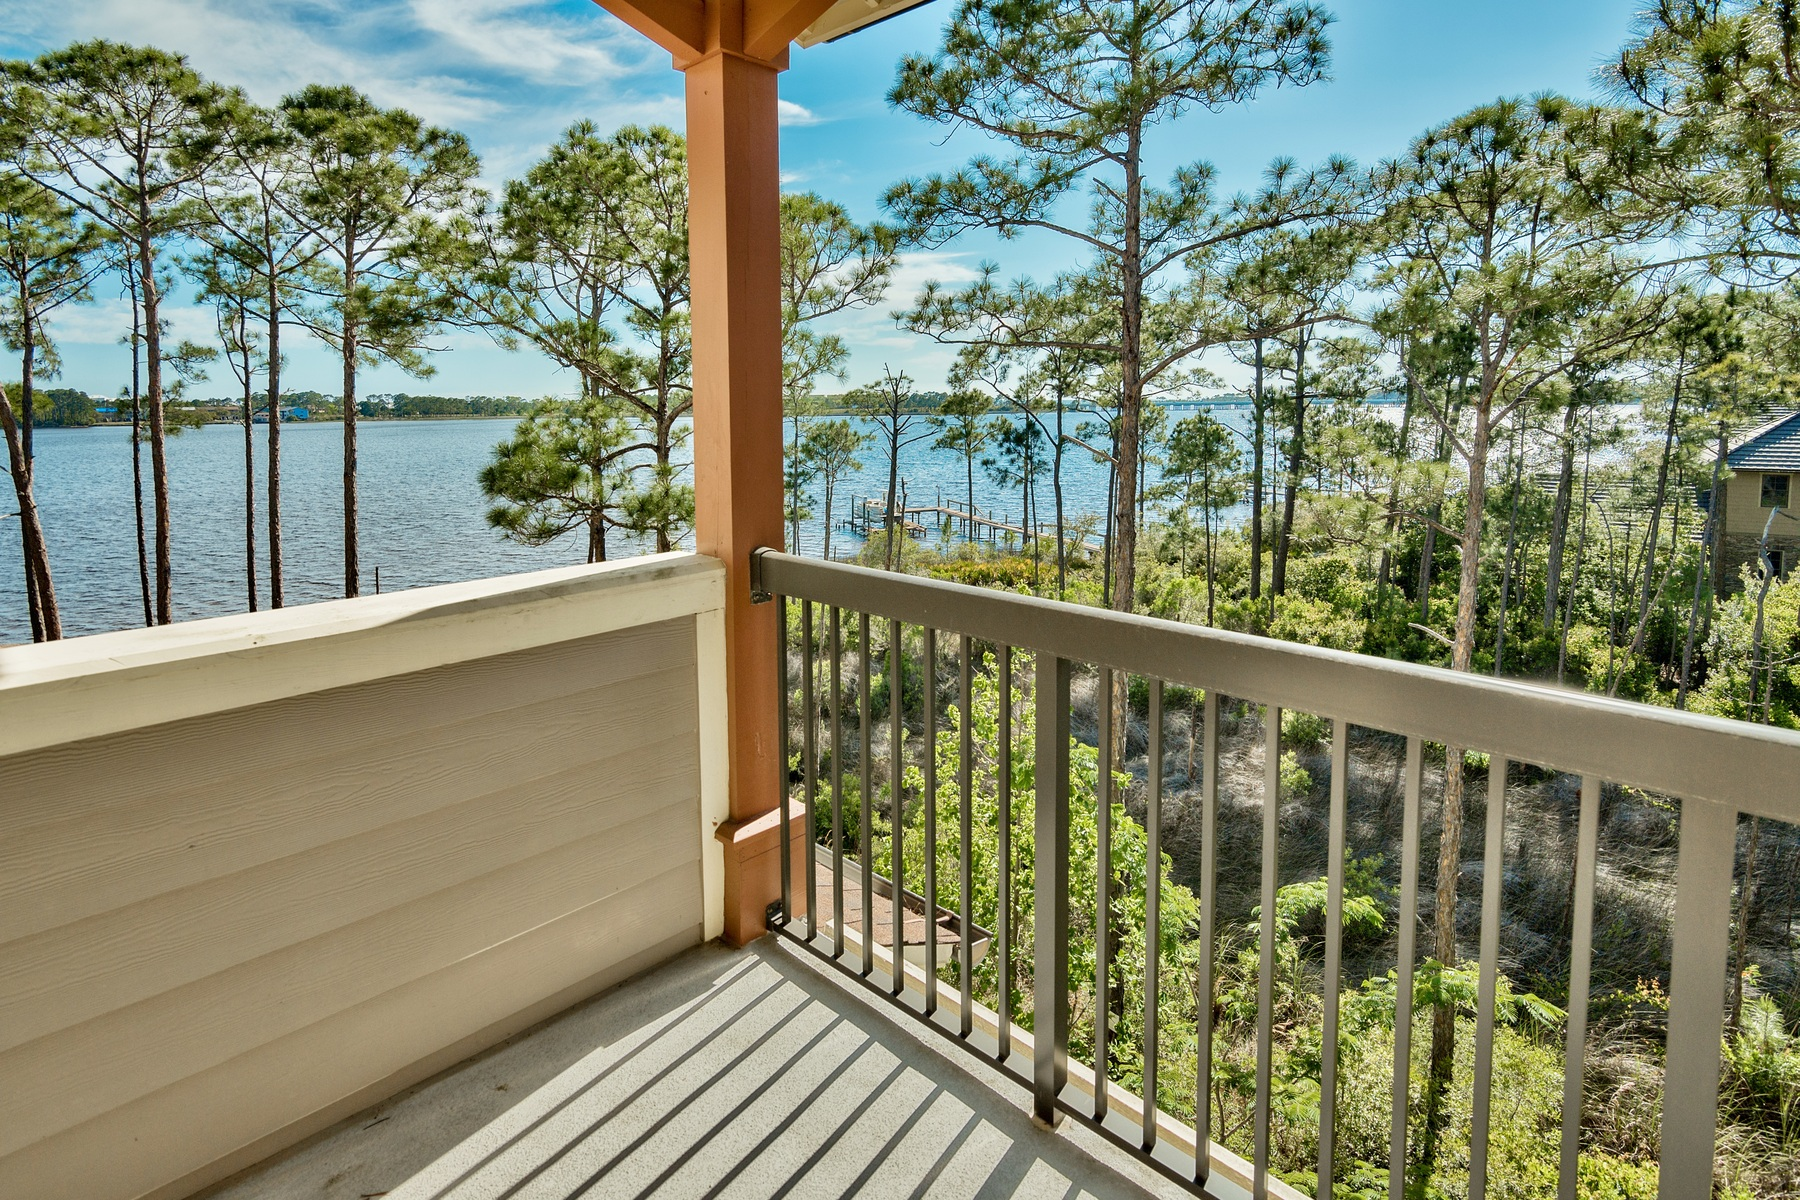 Eigentumswohnung für Verkauf beim BREATHTAKING LAKEFRONT VIEWS WITH TOP AMENITIES 1101 Sawgrass Court 303 Wild Heron, Panama City Beach, Florida, 32413 Vereinigte Staaten